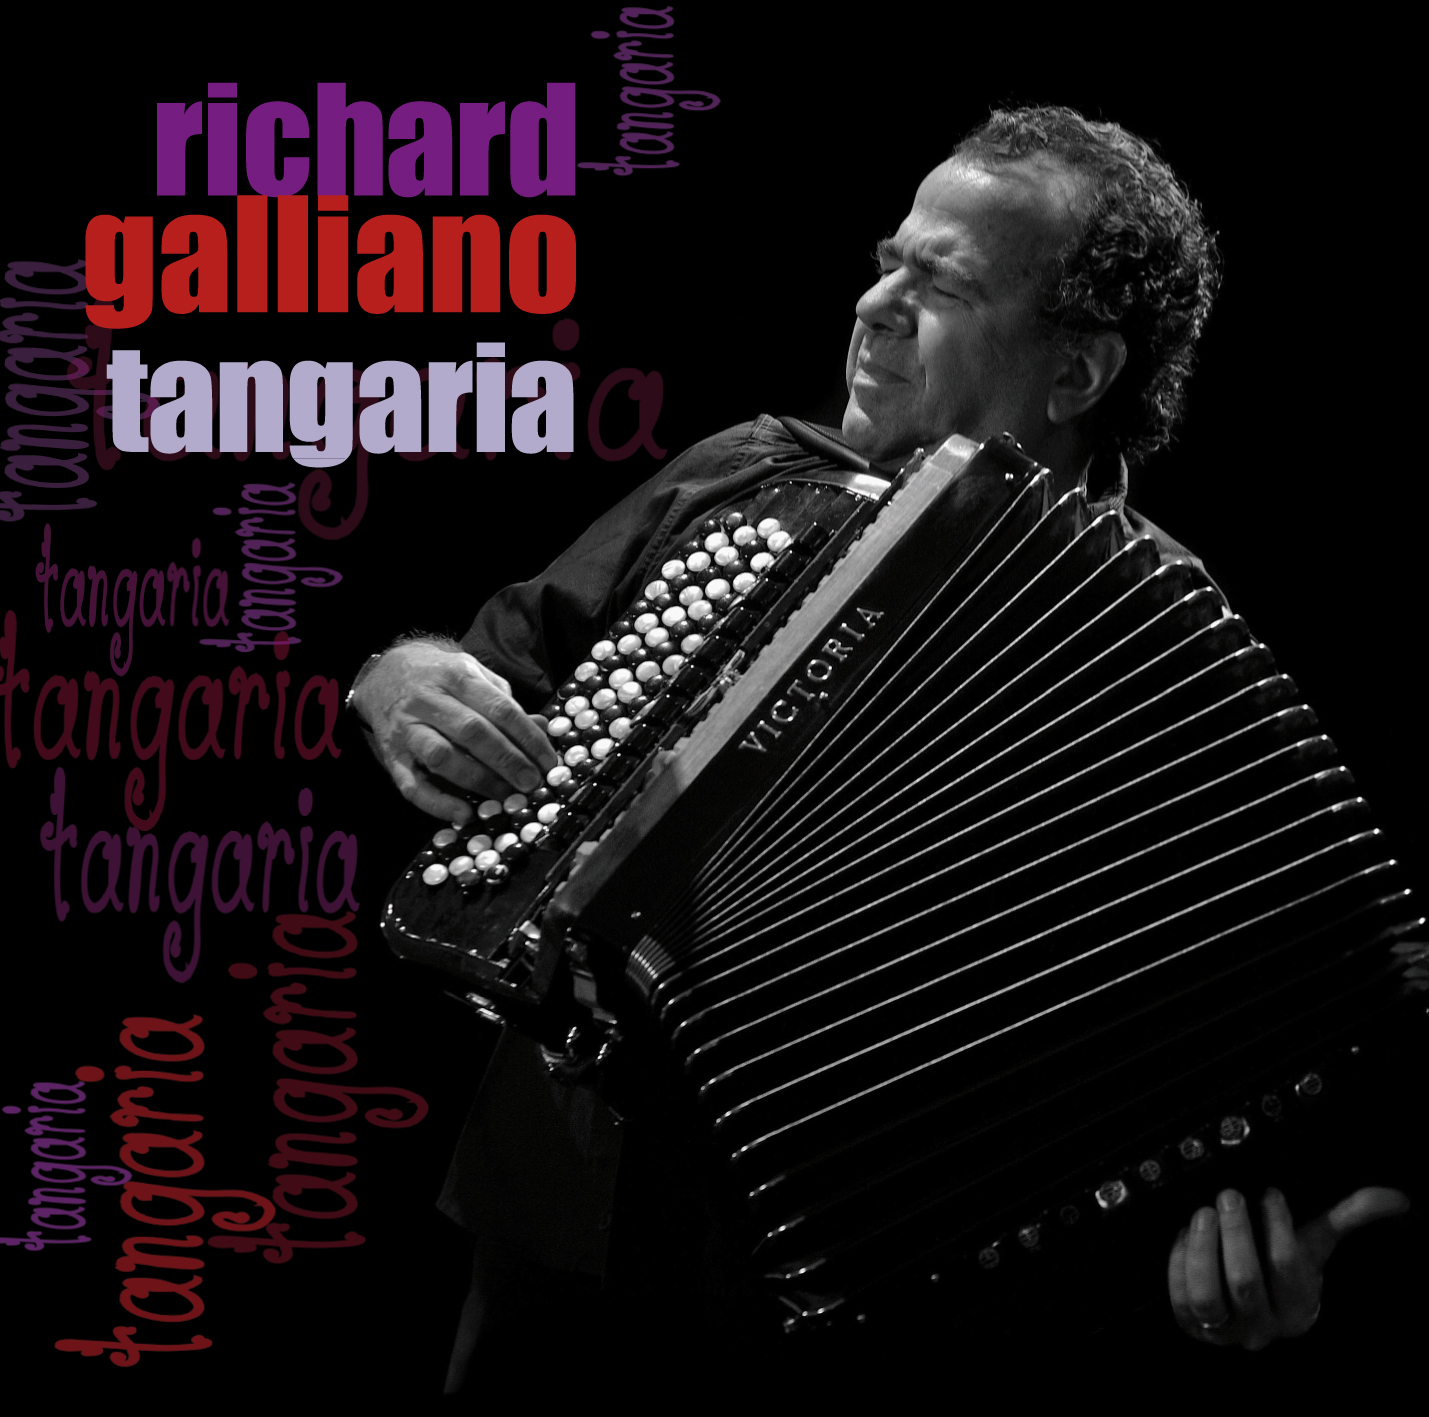 Richard Galliano - Tangaria